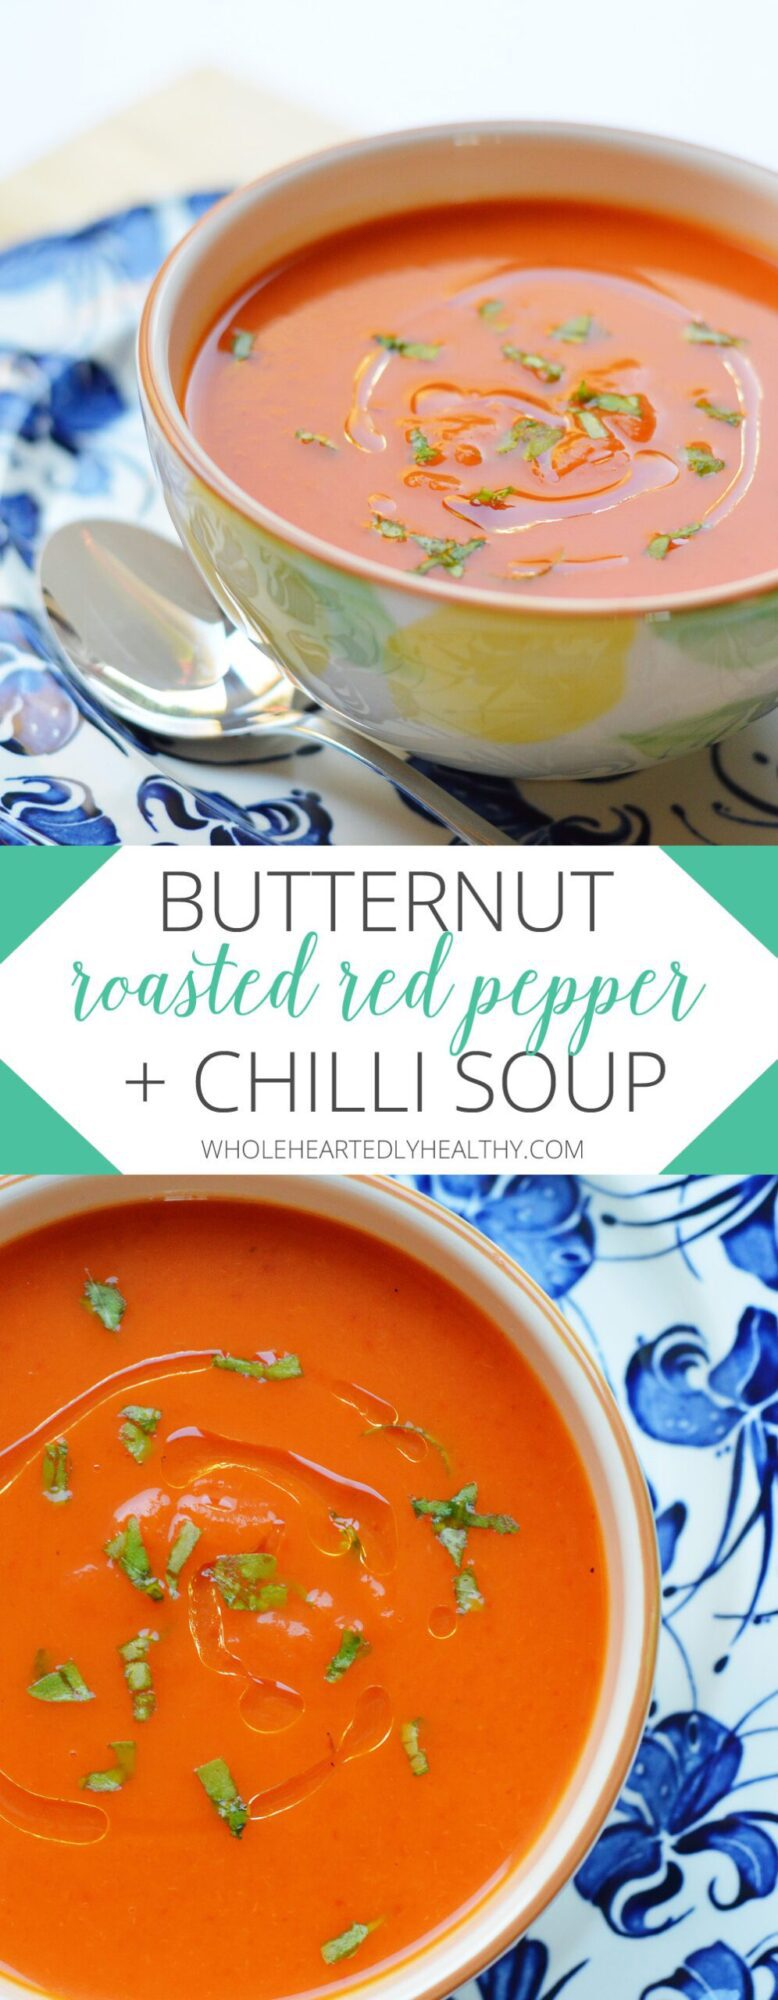 Butternut roasted red pepper and chilli soup